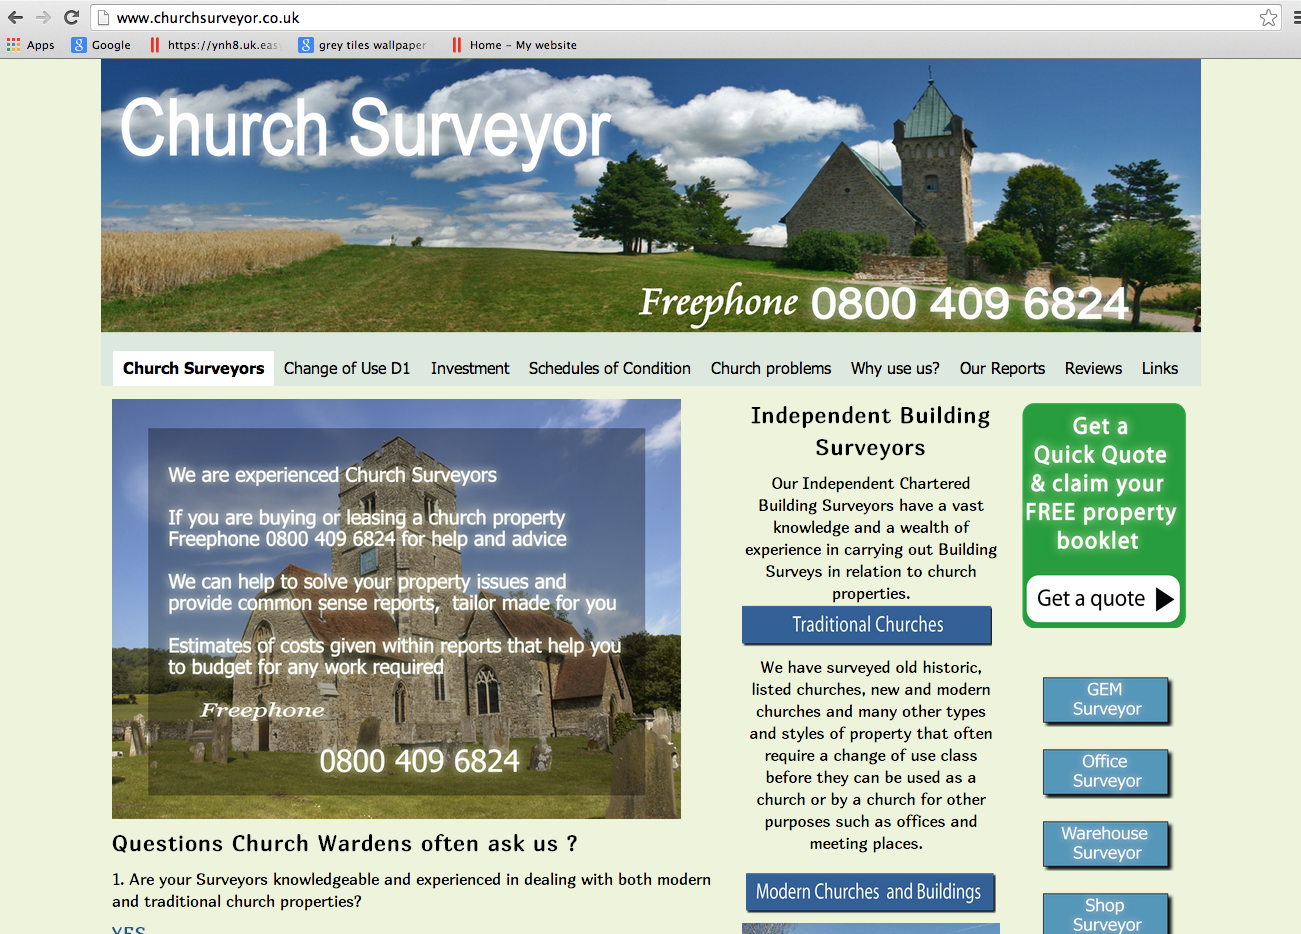 Website Brief - ChurchSurveyor.co.uk